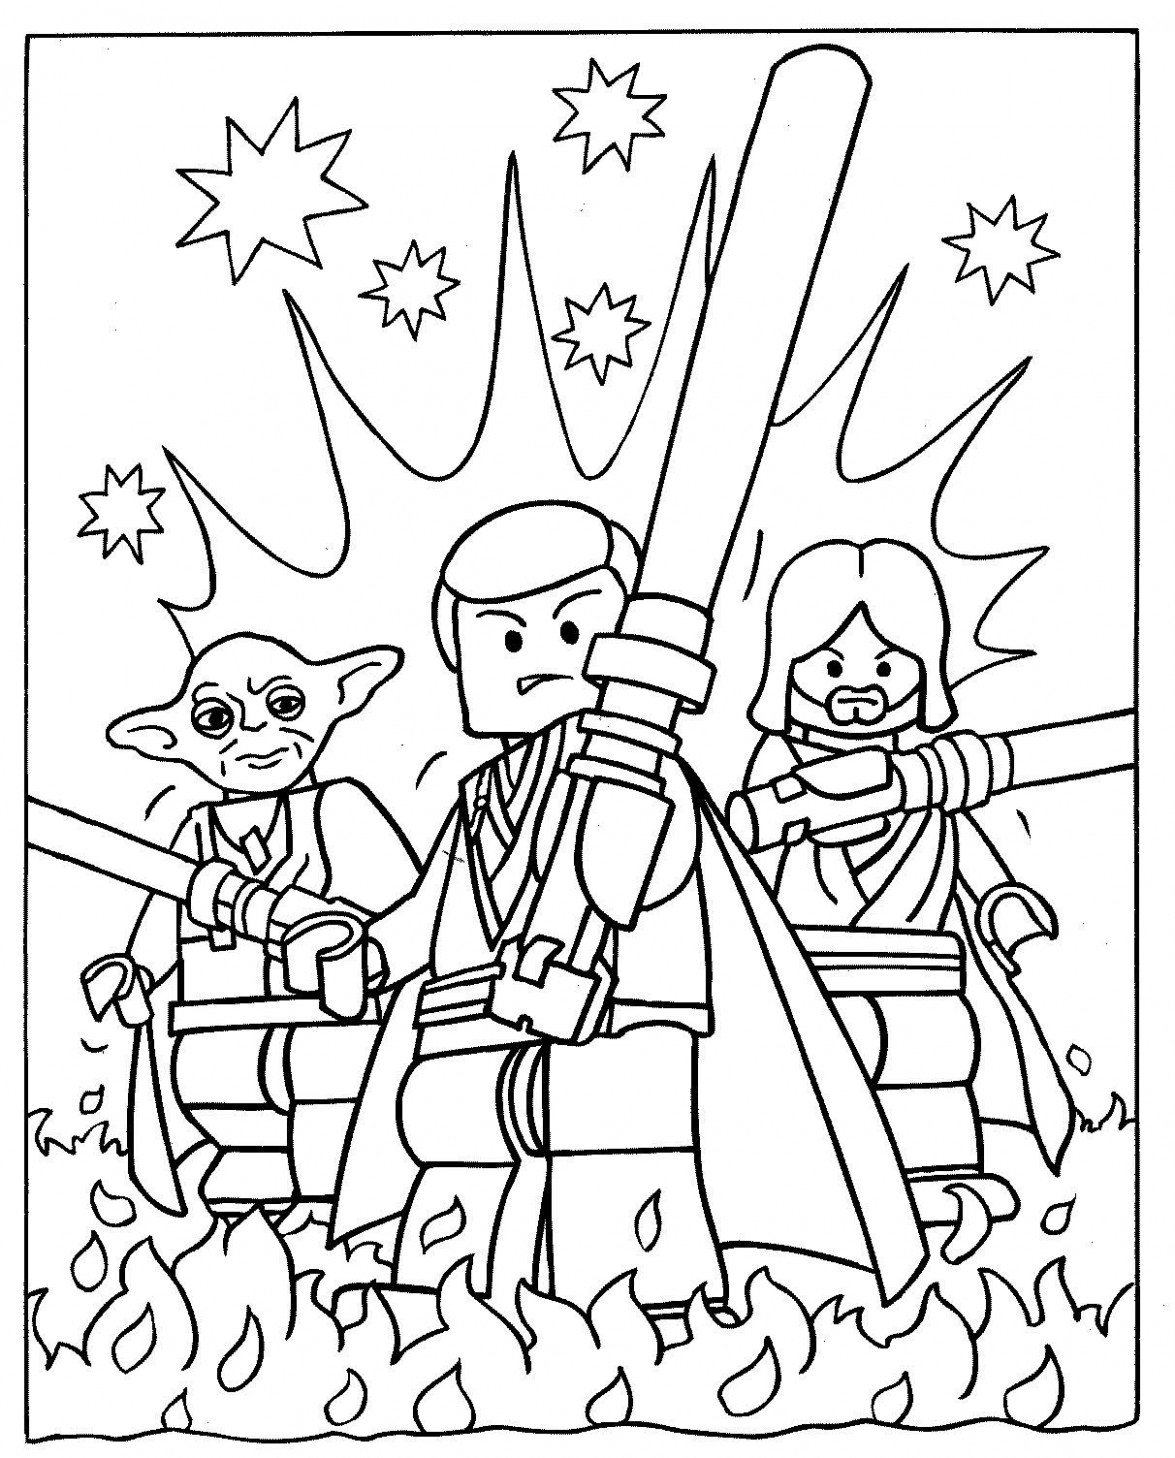 TheRetroInc on Etsy | Kids color pages | Pinterest | Lego coloring ..